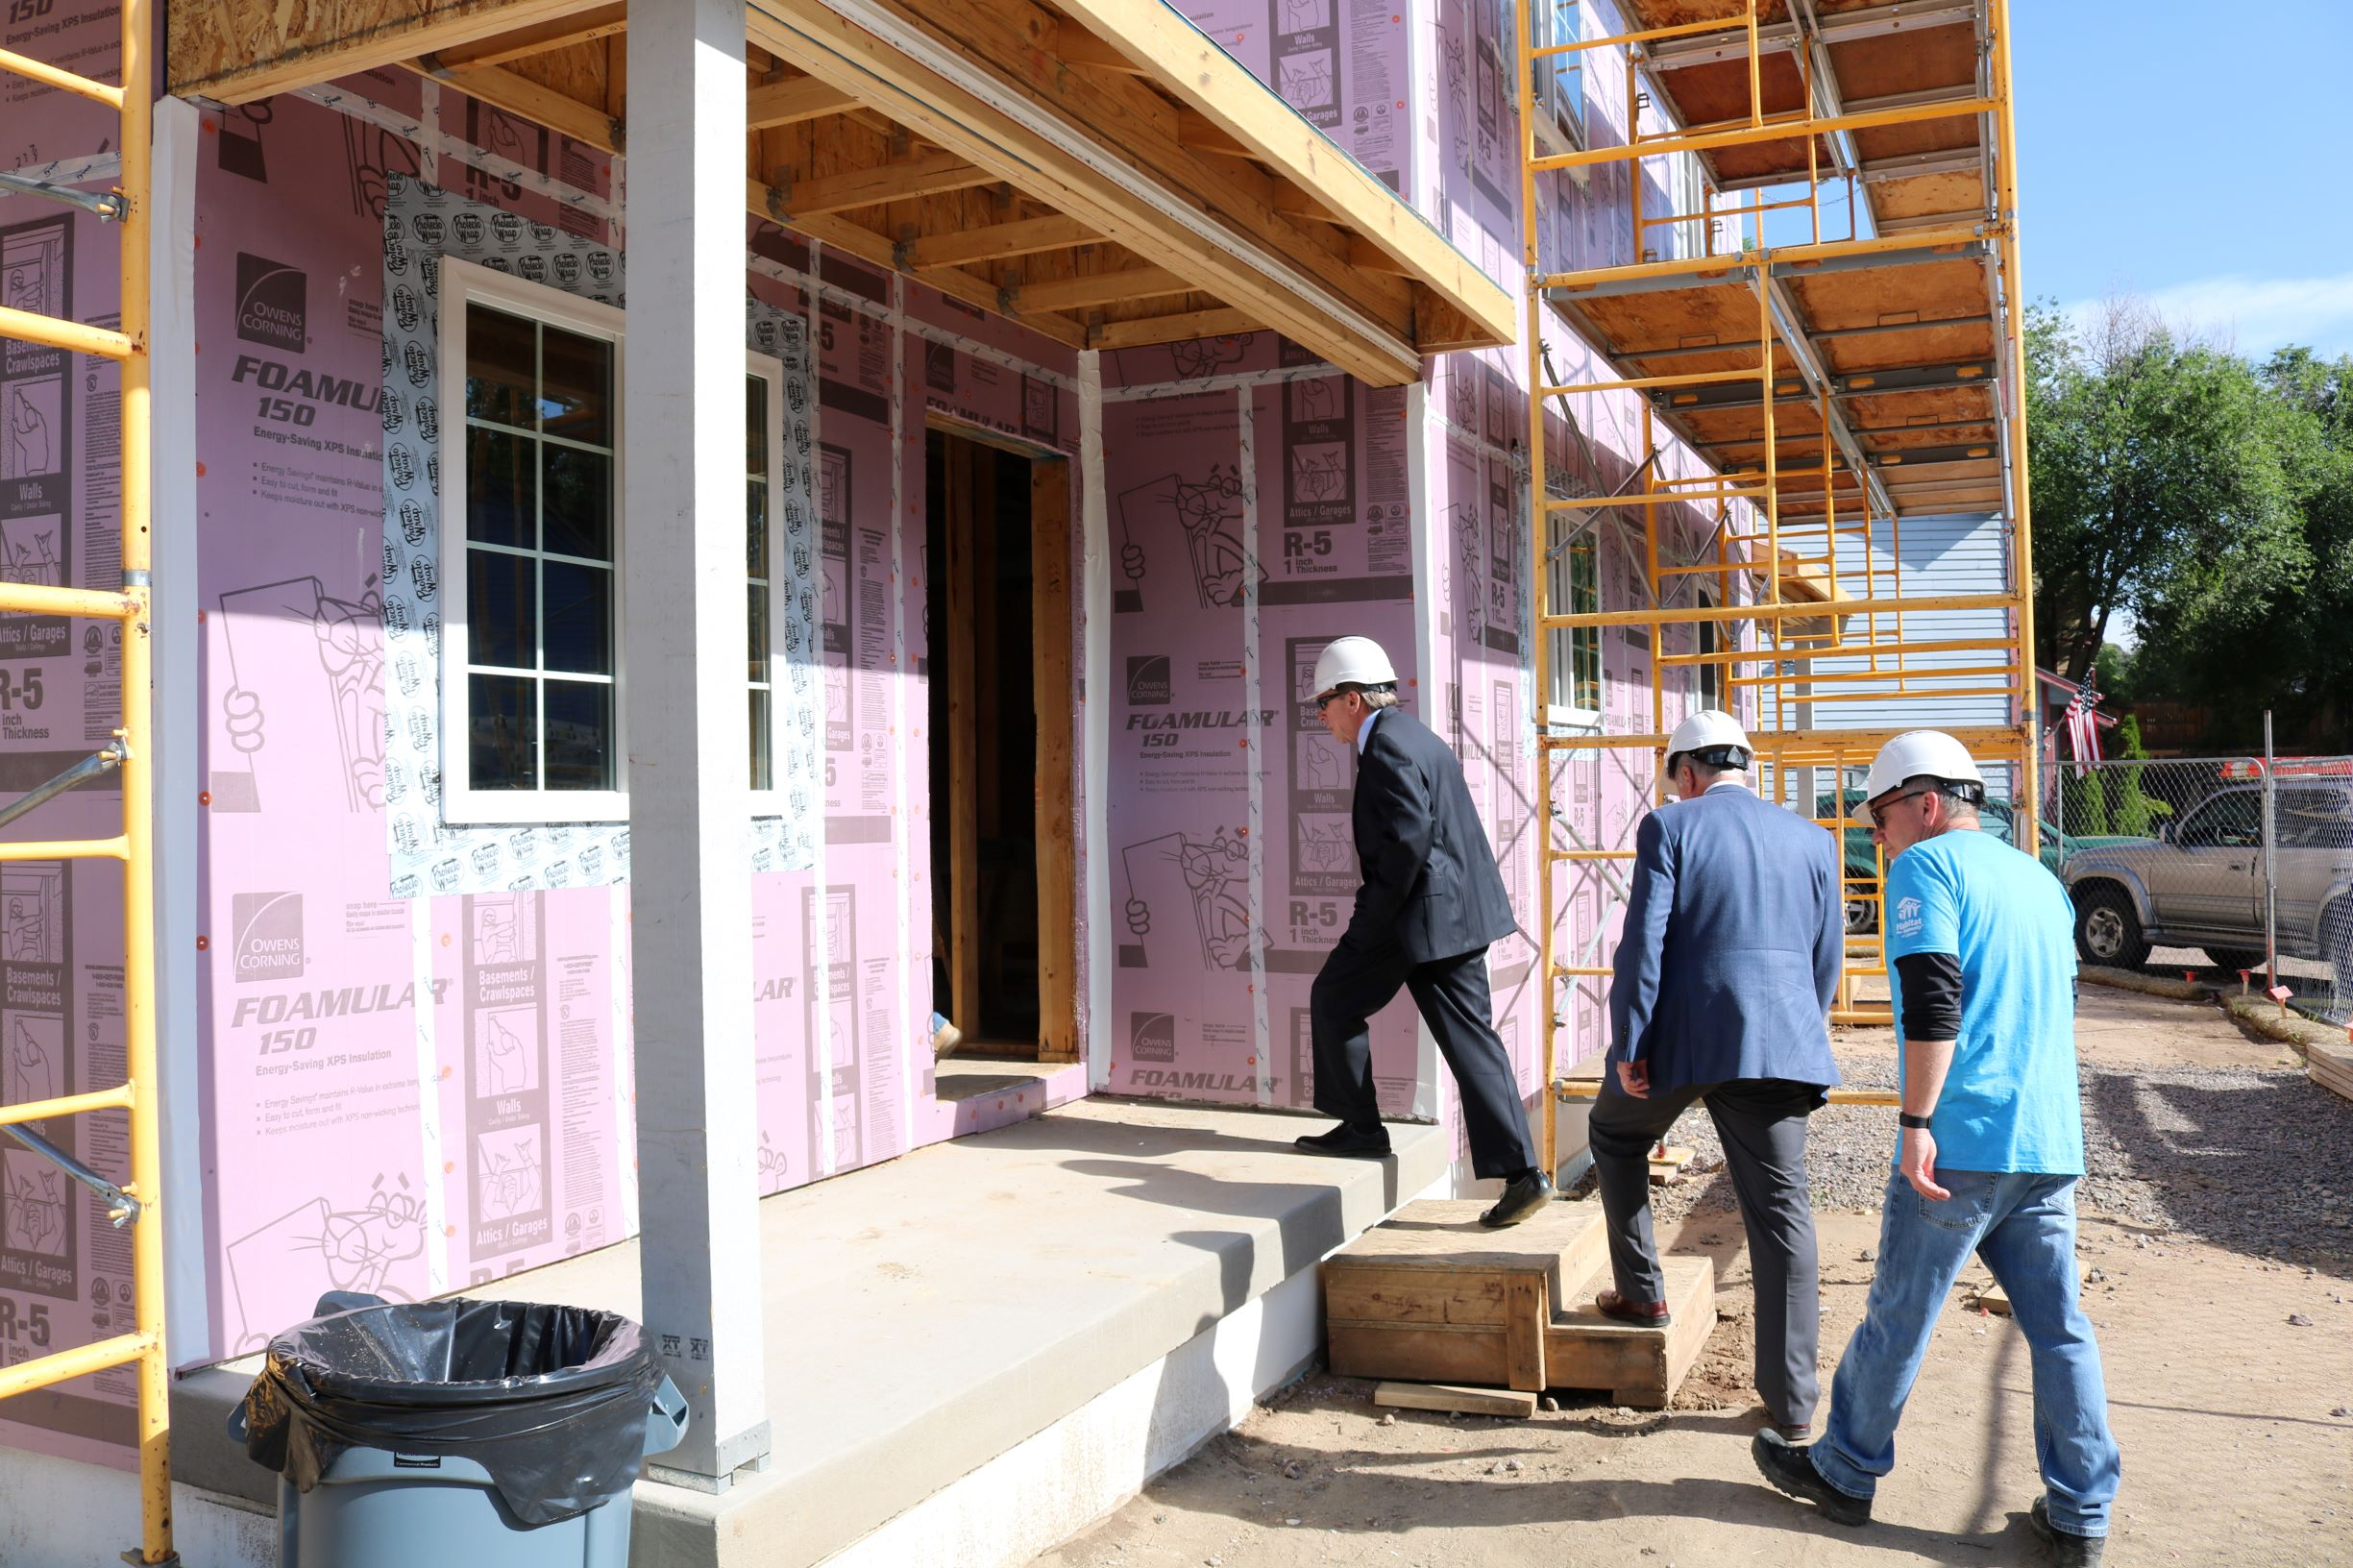 Mayor Suthers, Steve Posey, Community Development Division Manager for the City of COS, and Greg Kovach, Director of Operations at PPHFH enter a current build.